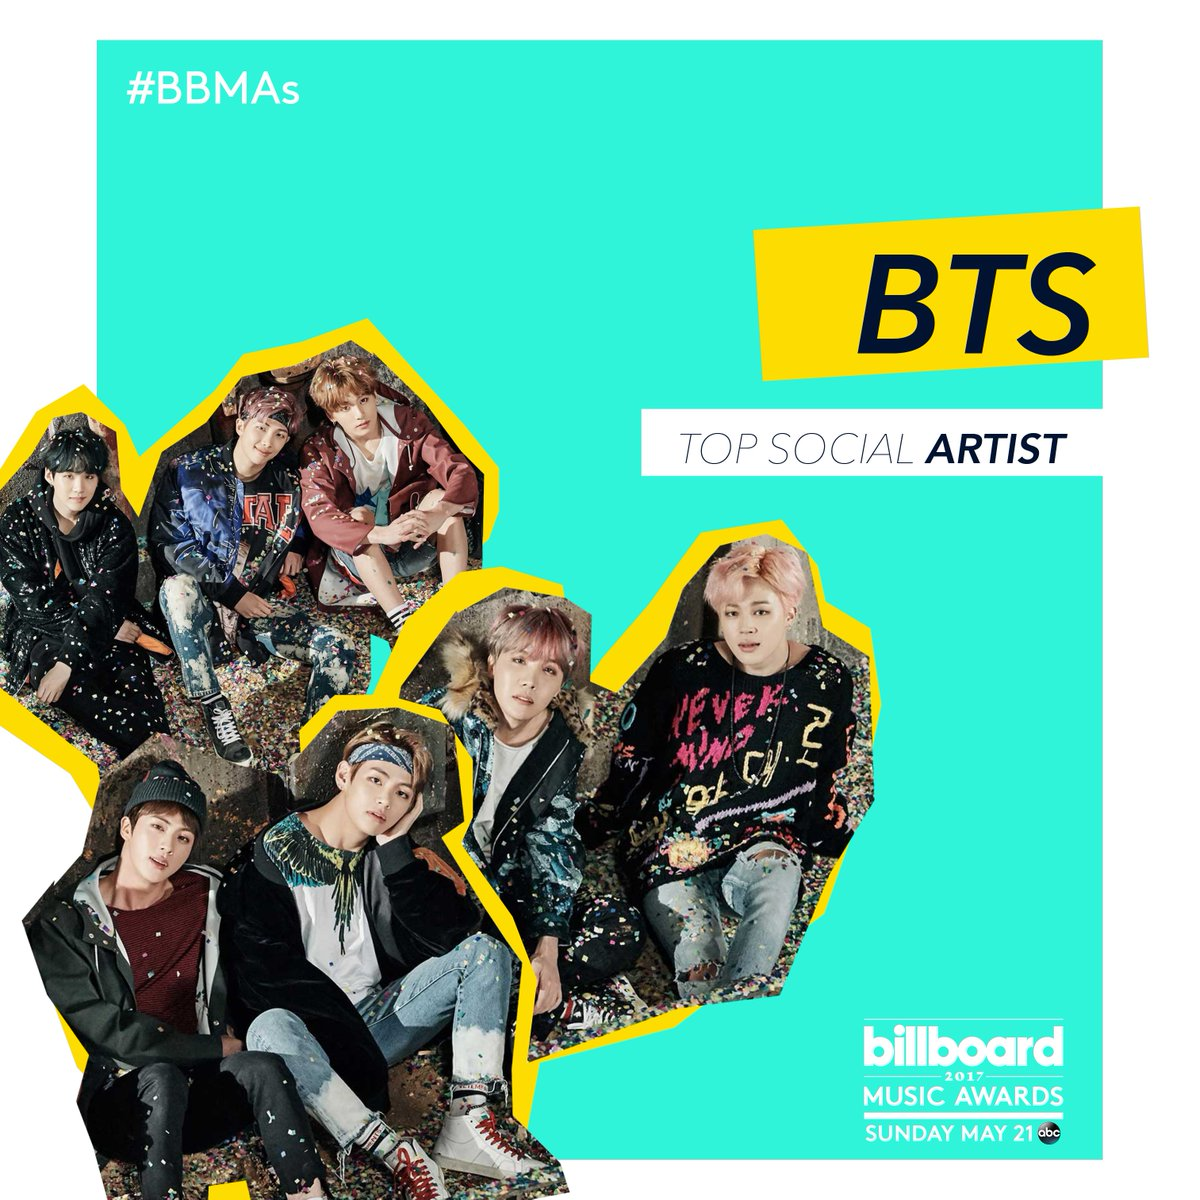 .@BTS_twt is the first K-pop group to receive a #BBMAs nomination and they're up for Top Social Artist! 👏